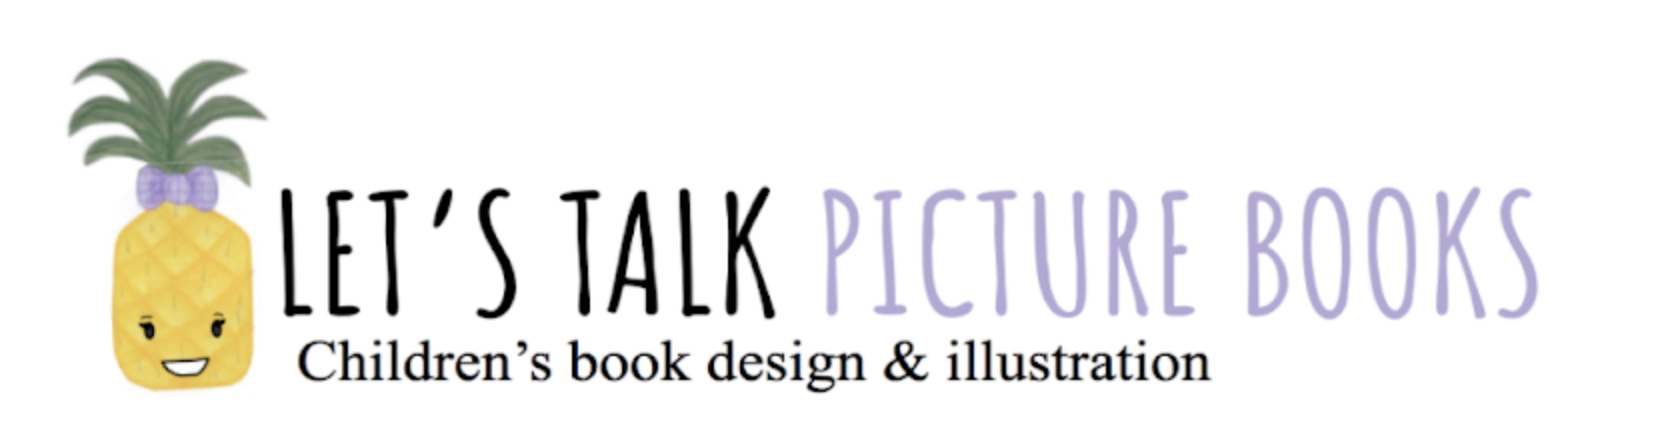 Let's Talk Picture Books